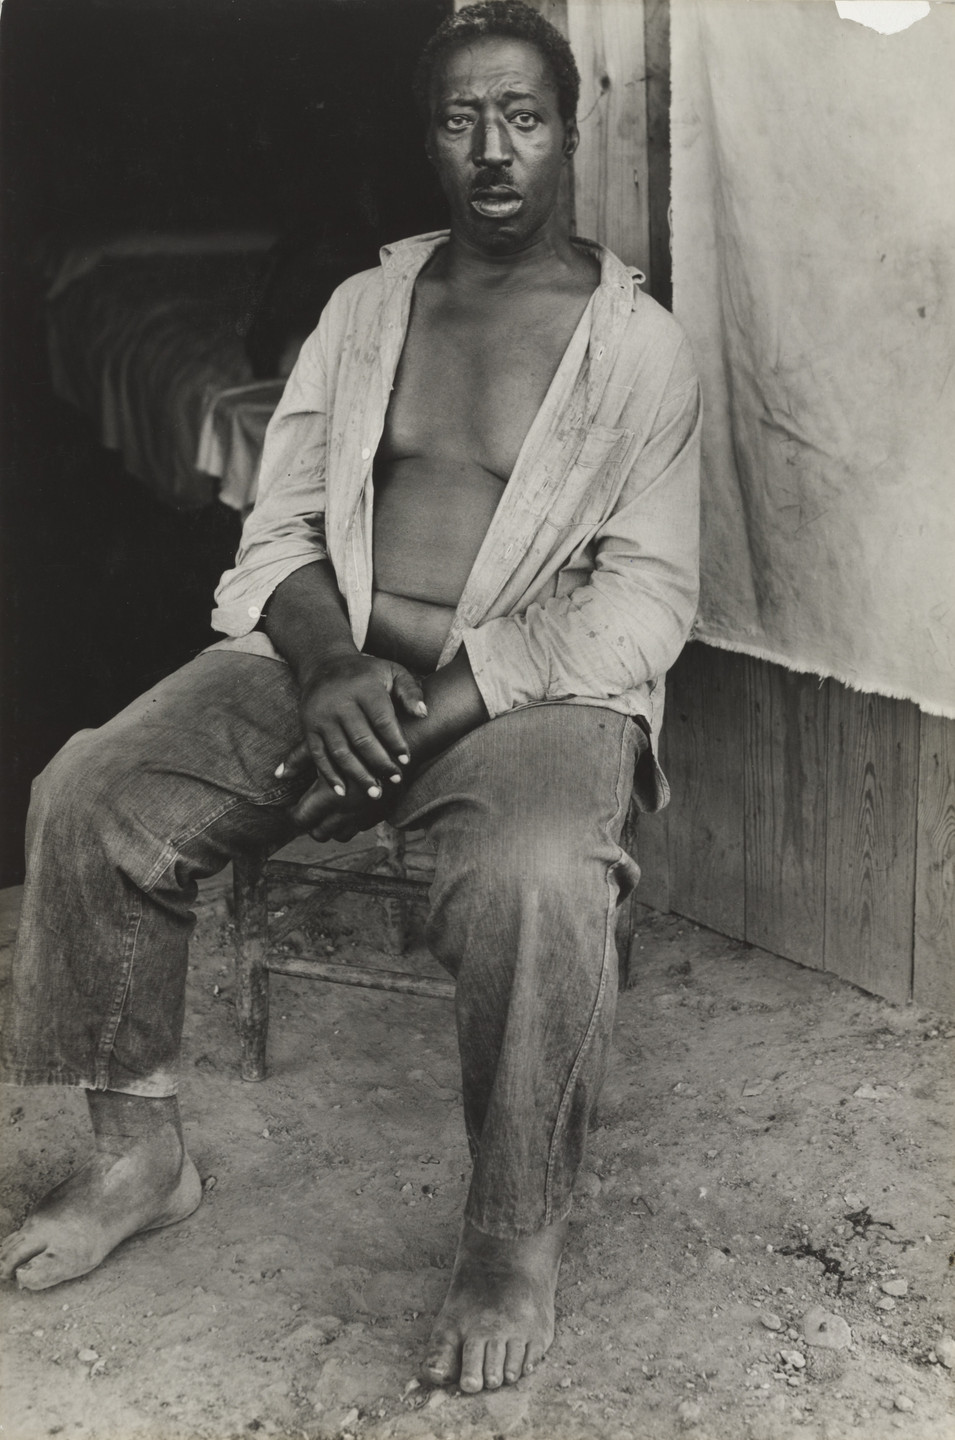 Sid Grossman. Dying Sharecropper, Lost Colony, Missouri. 1940